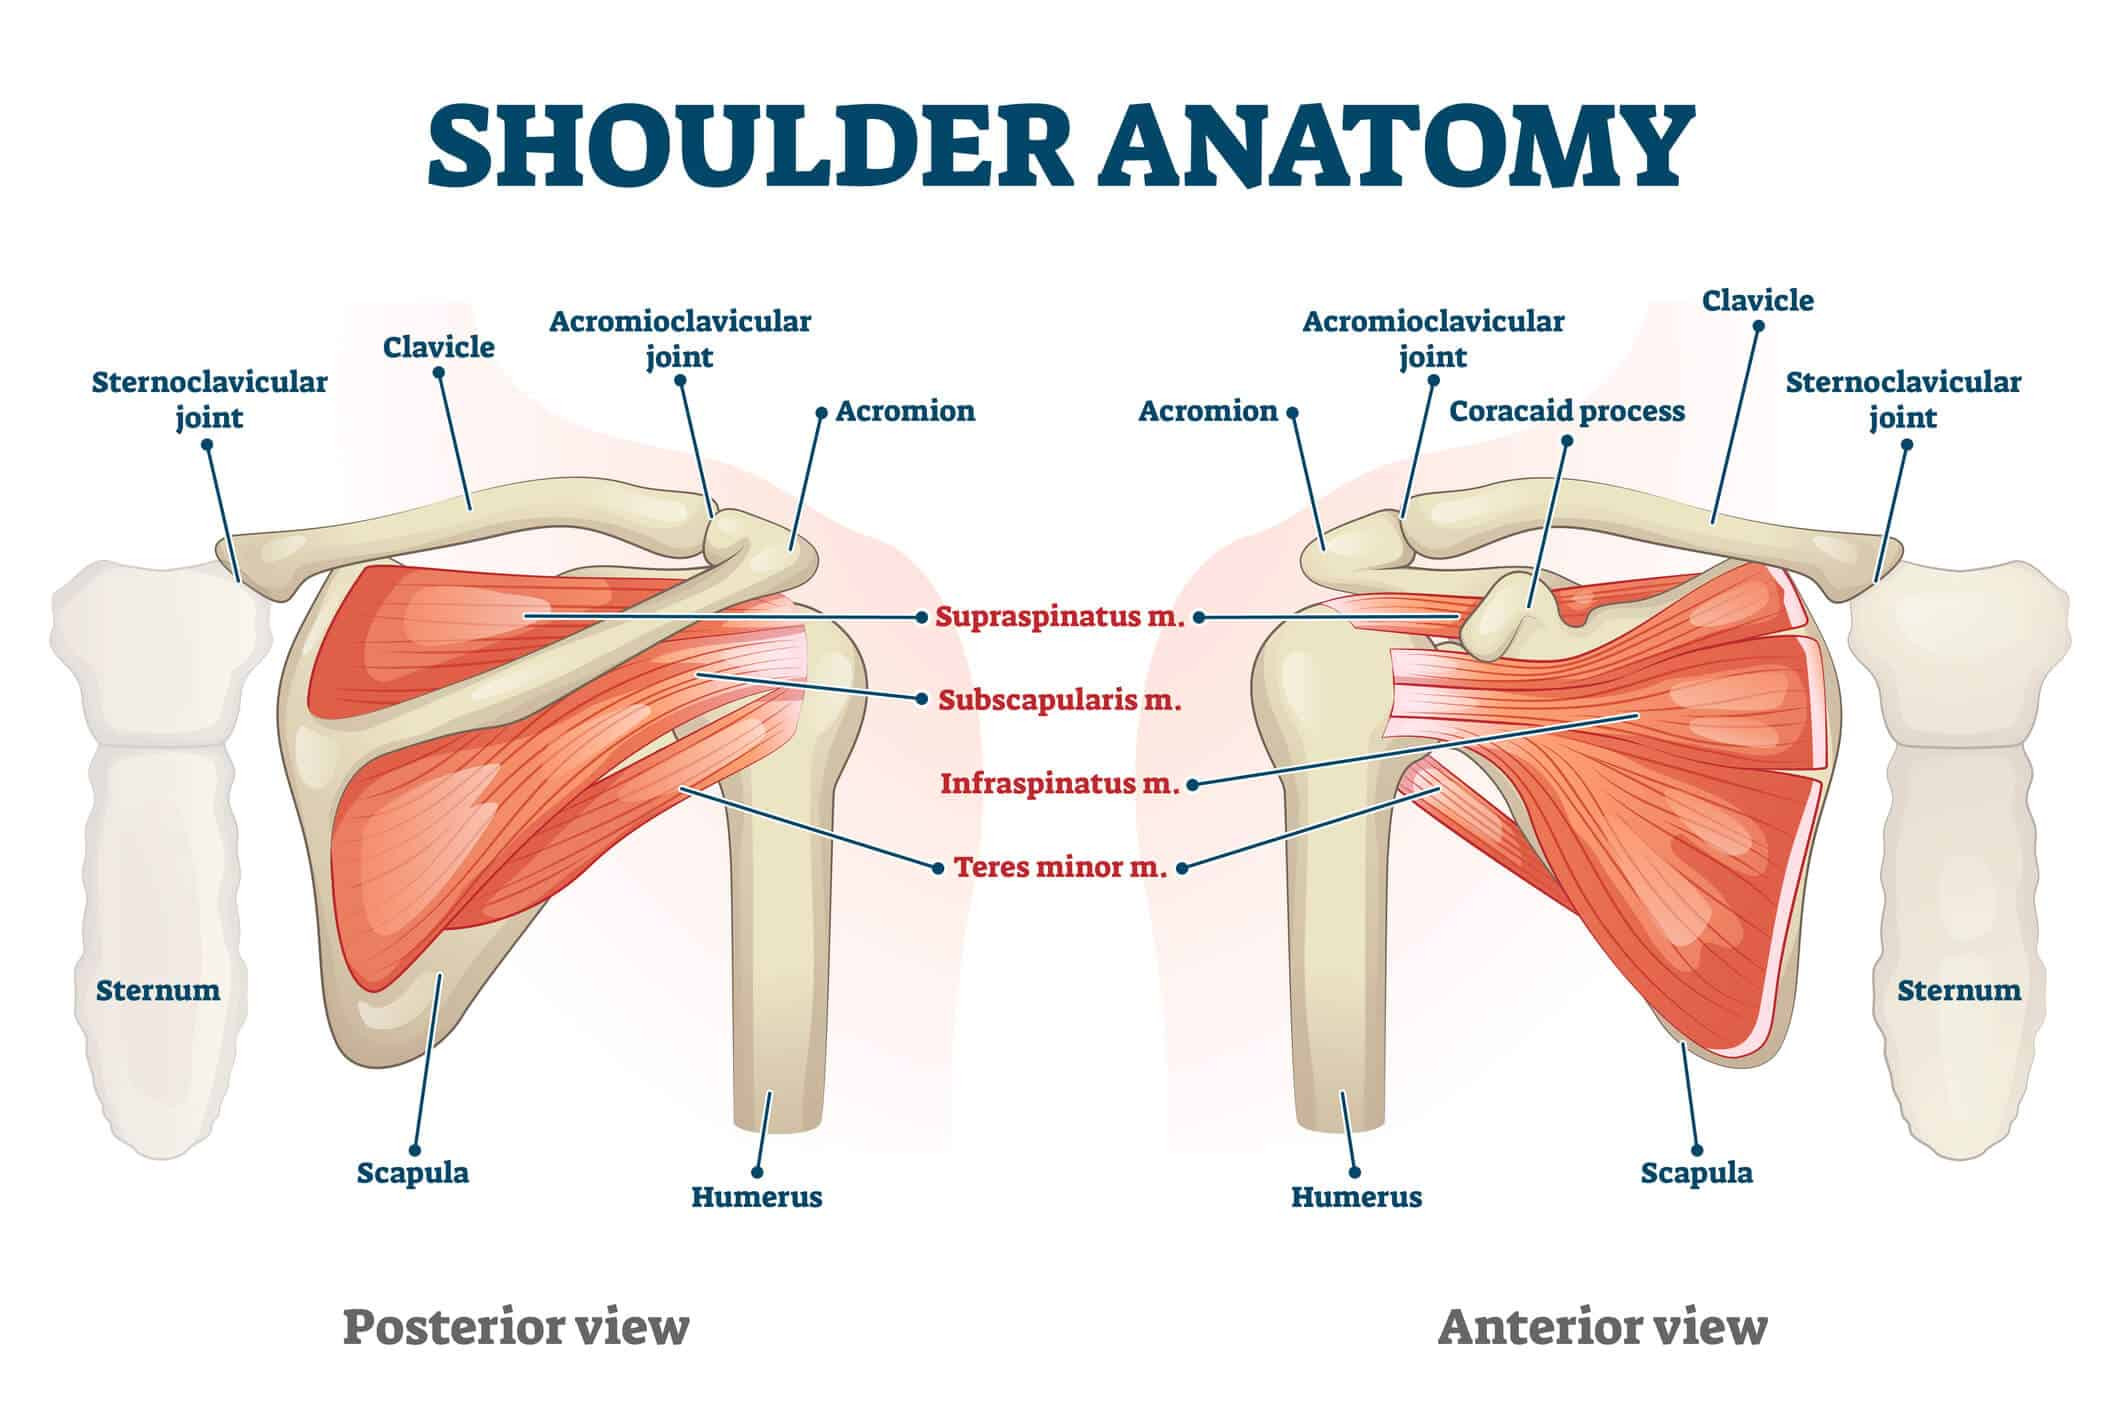 Image of the anatomy of the shoulder, including the 2 joints that comprise the rotator cuff